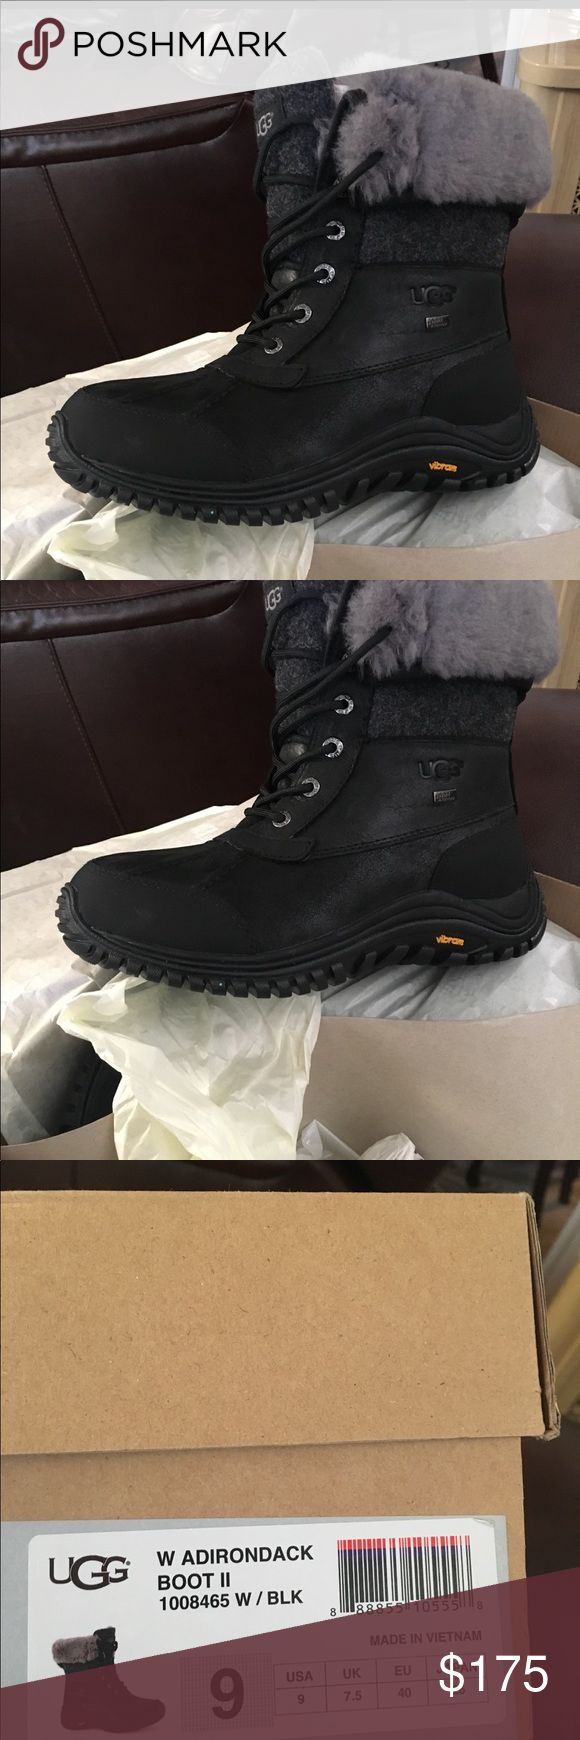 NWT UGG ADIRONDACK BOOTS! NWT UGG ADIRONDACK BOOTS! Never worn! Black and grey! UGG Shoes Winter & Rain Boots